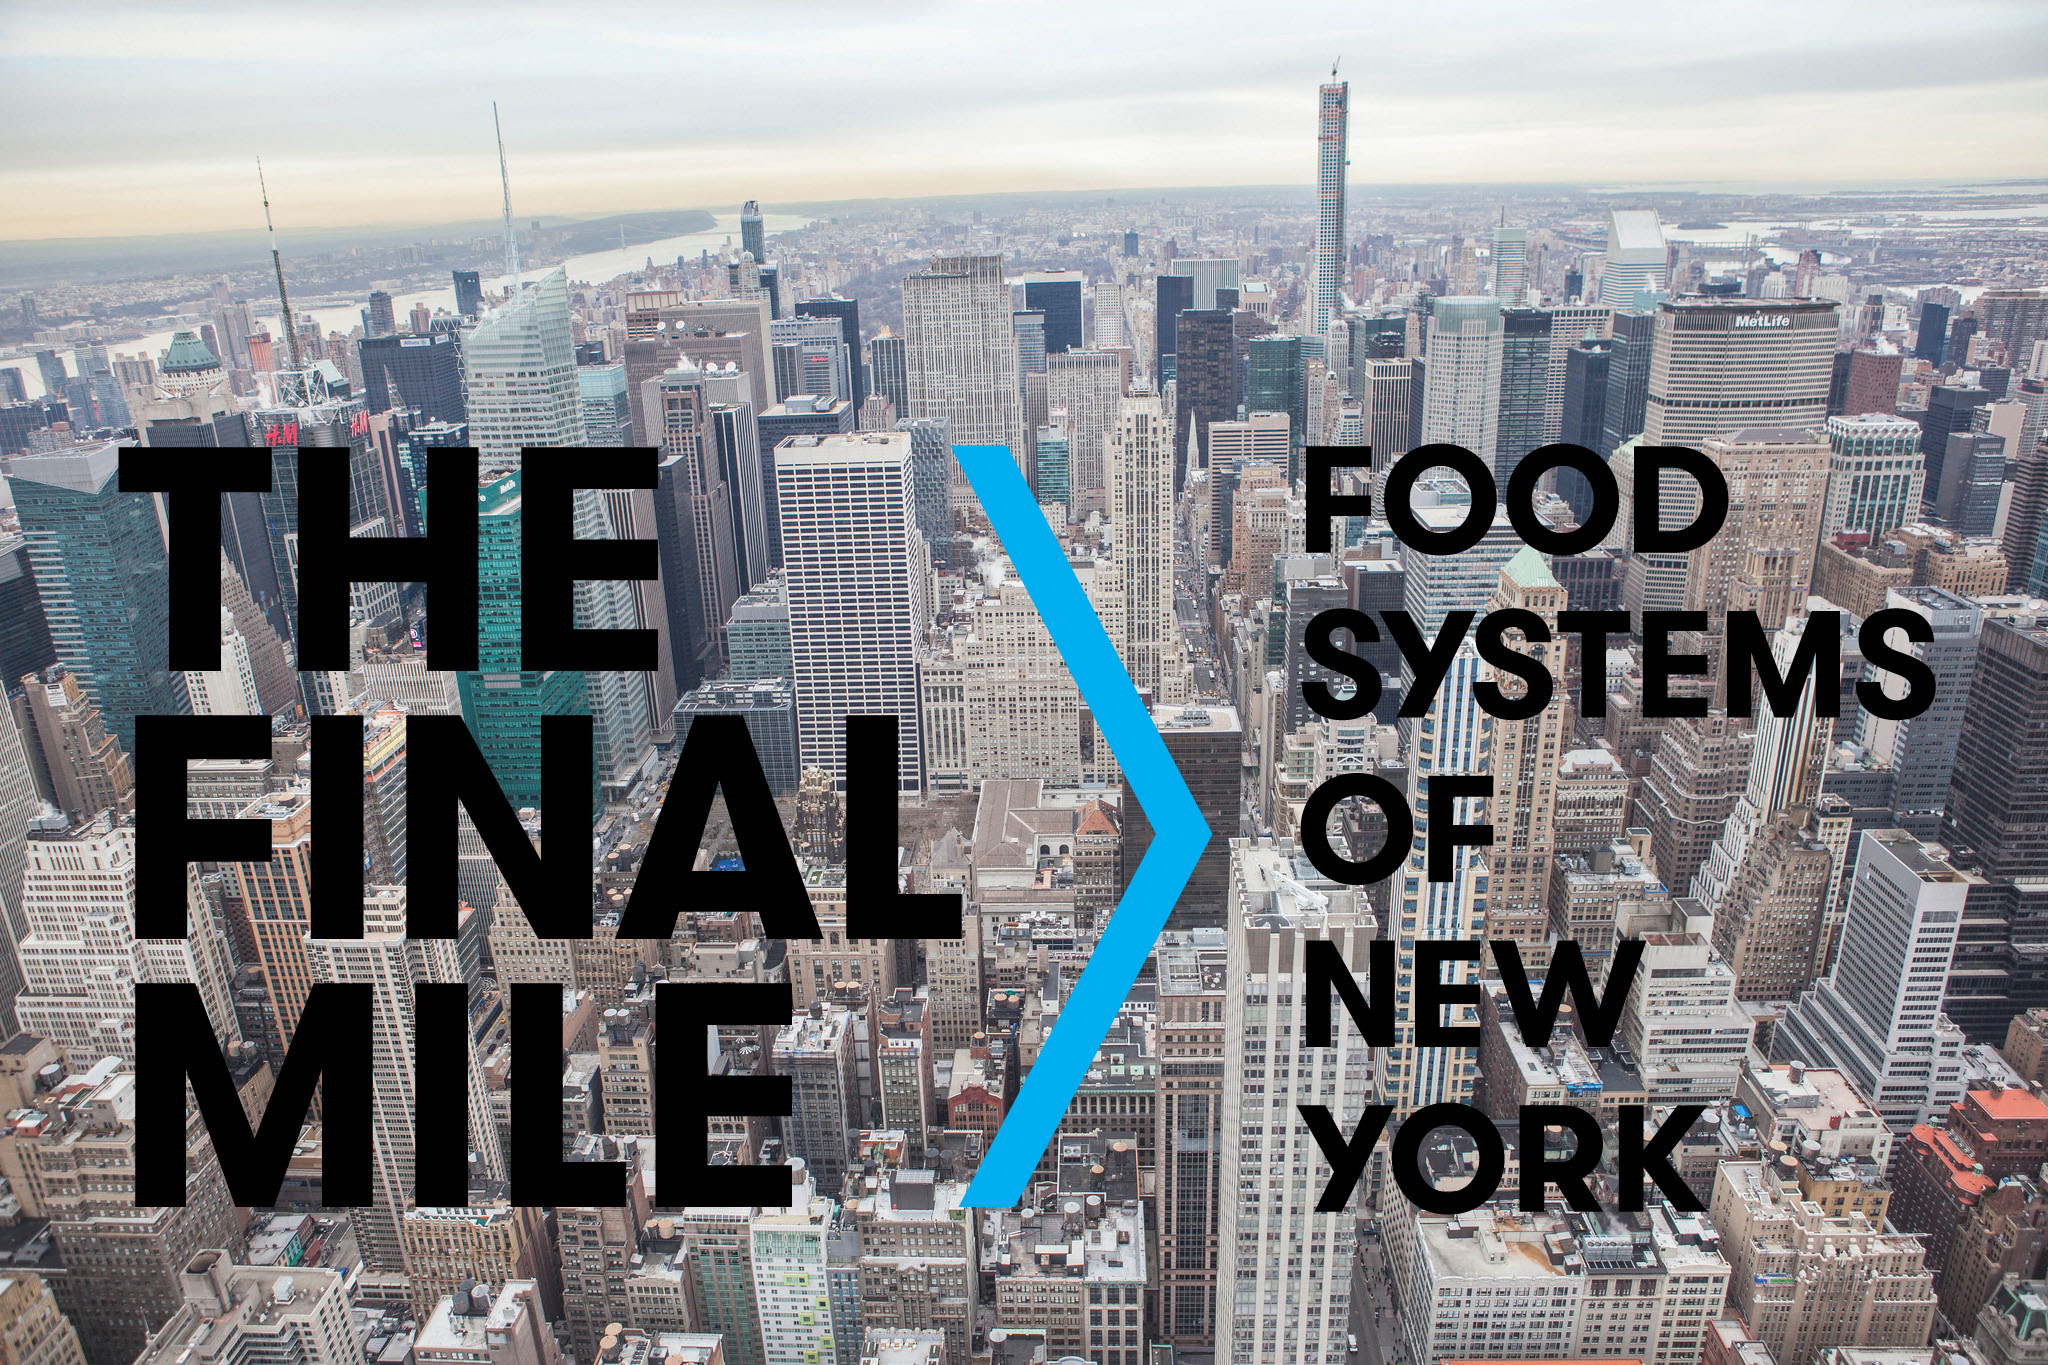 The Final Mile NYC